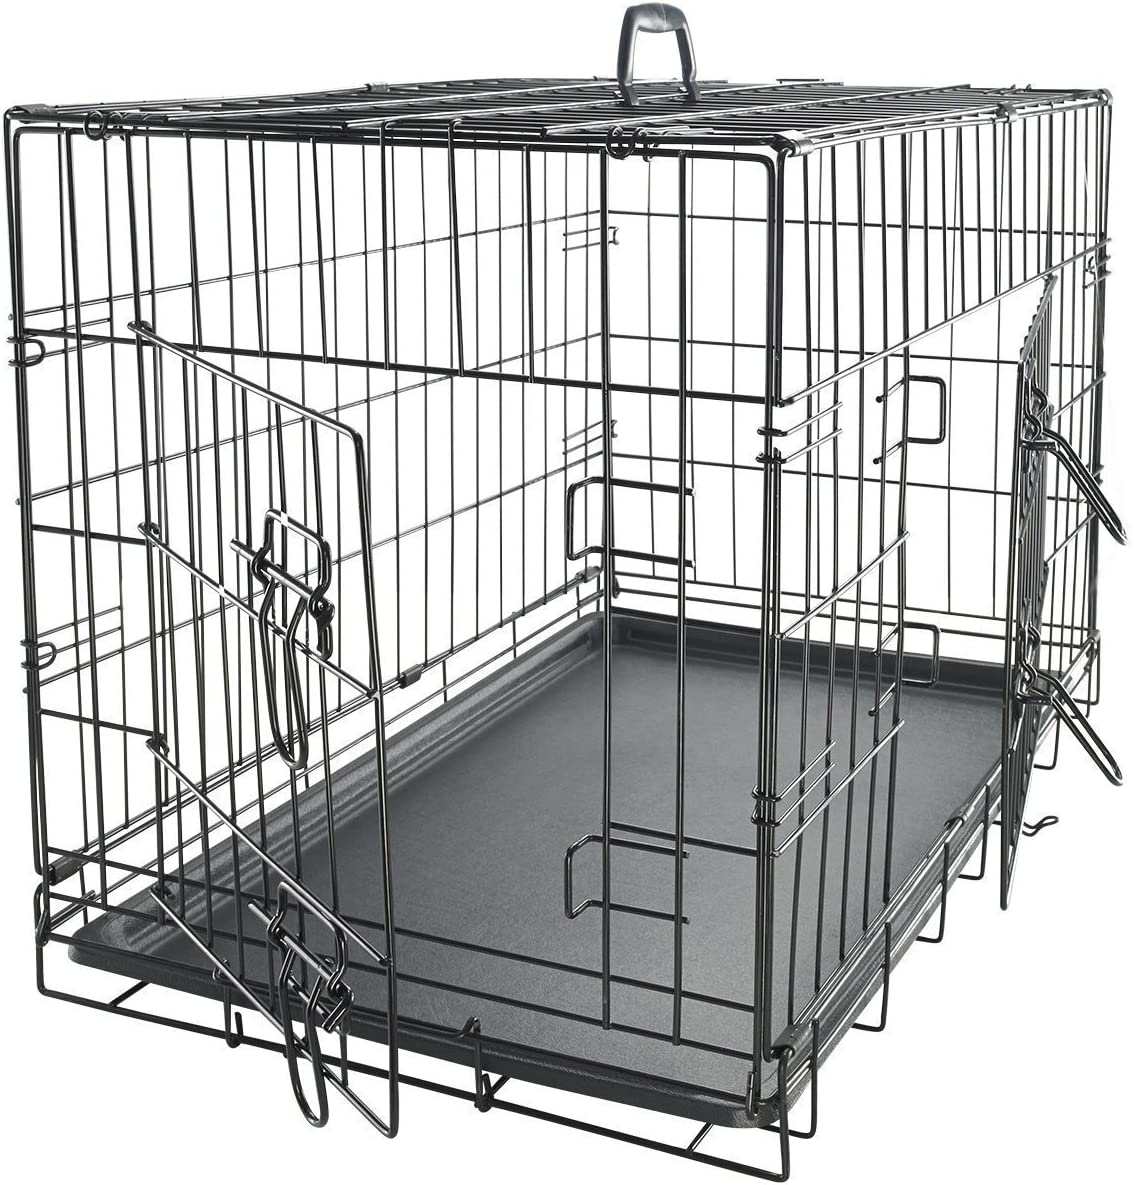 Paws Pals Dog Crate Double-Door Folding Metal – Wire Pet Cage w Divider Tray for Training Pet Supplies Accessories – 2020 Newly Designed Model